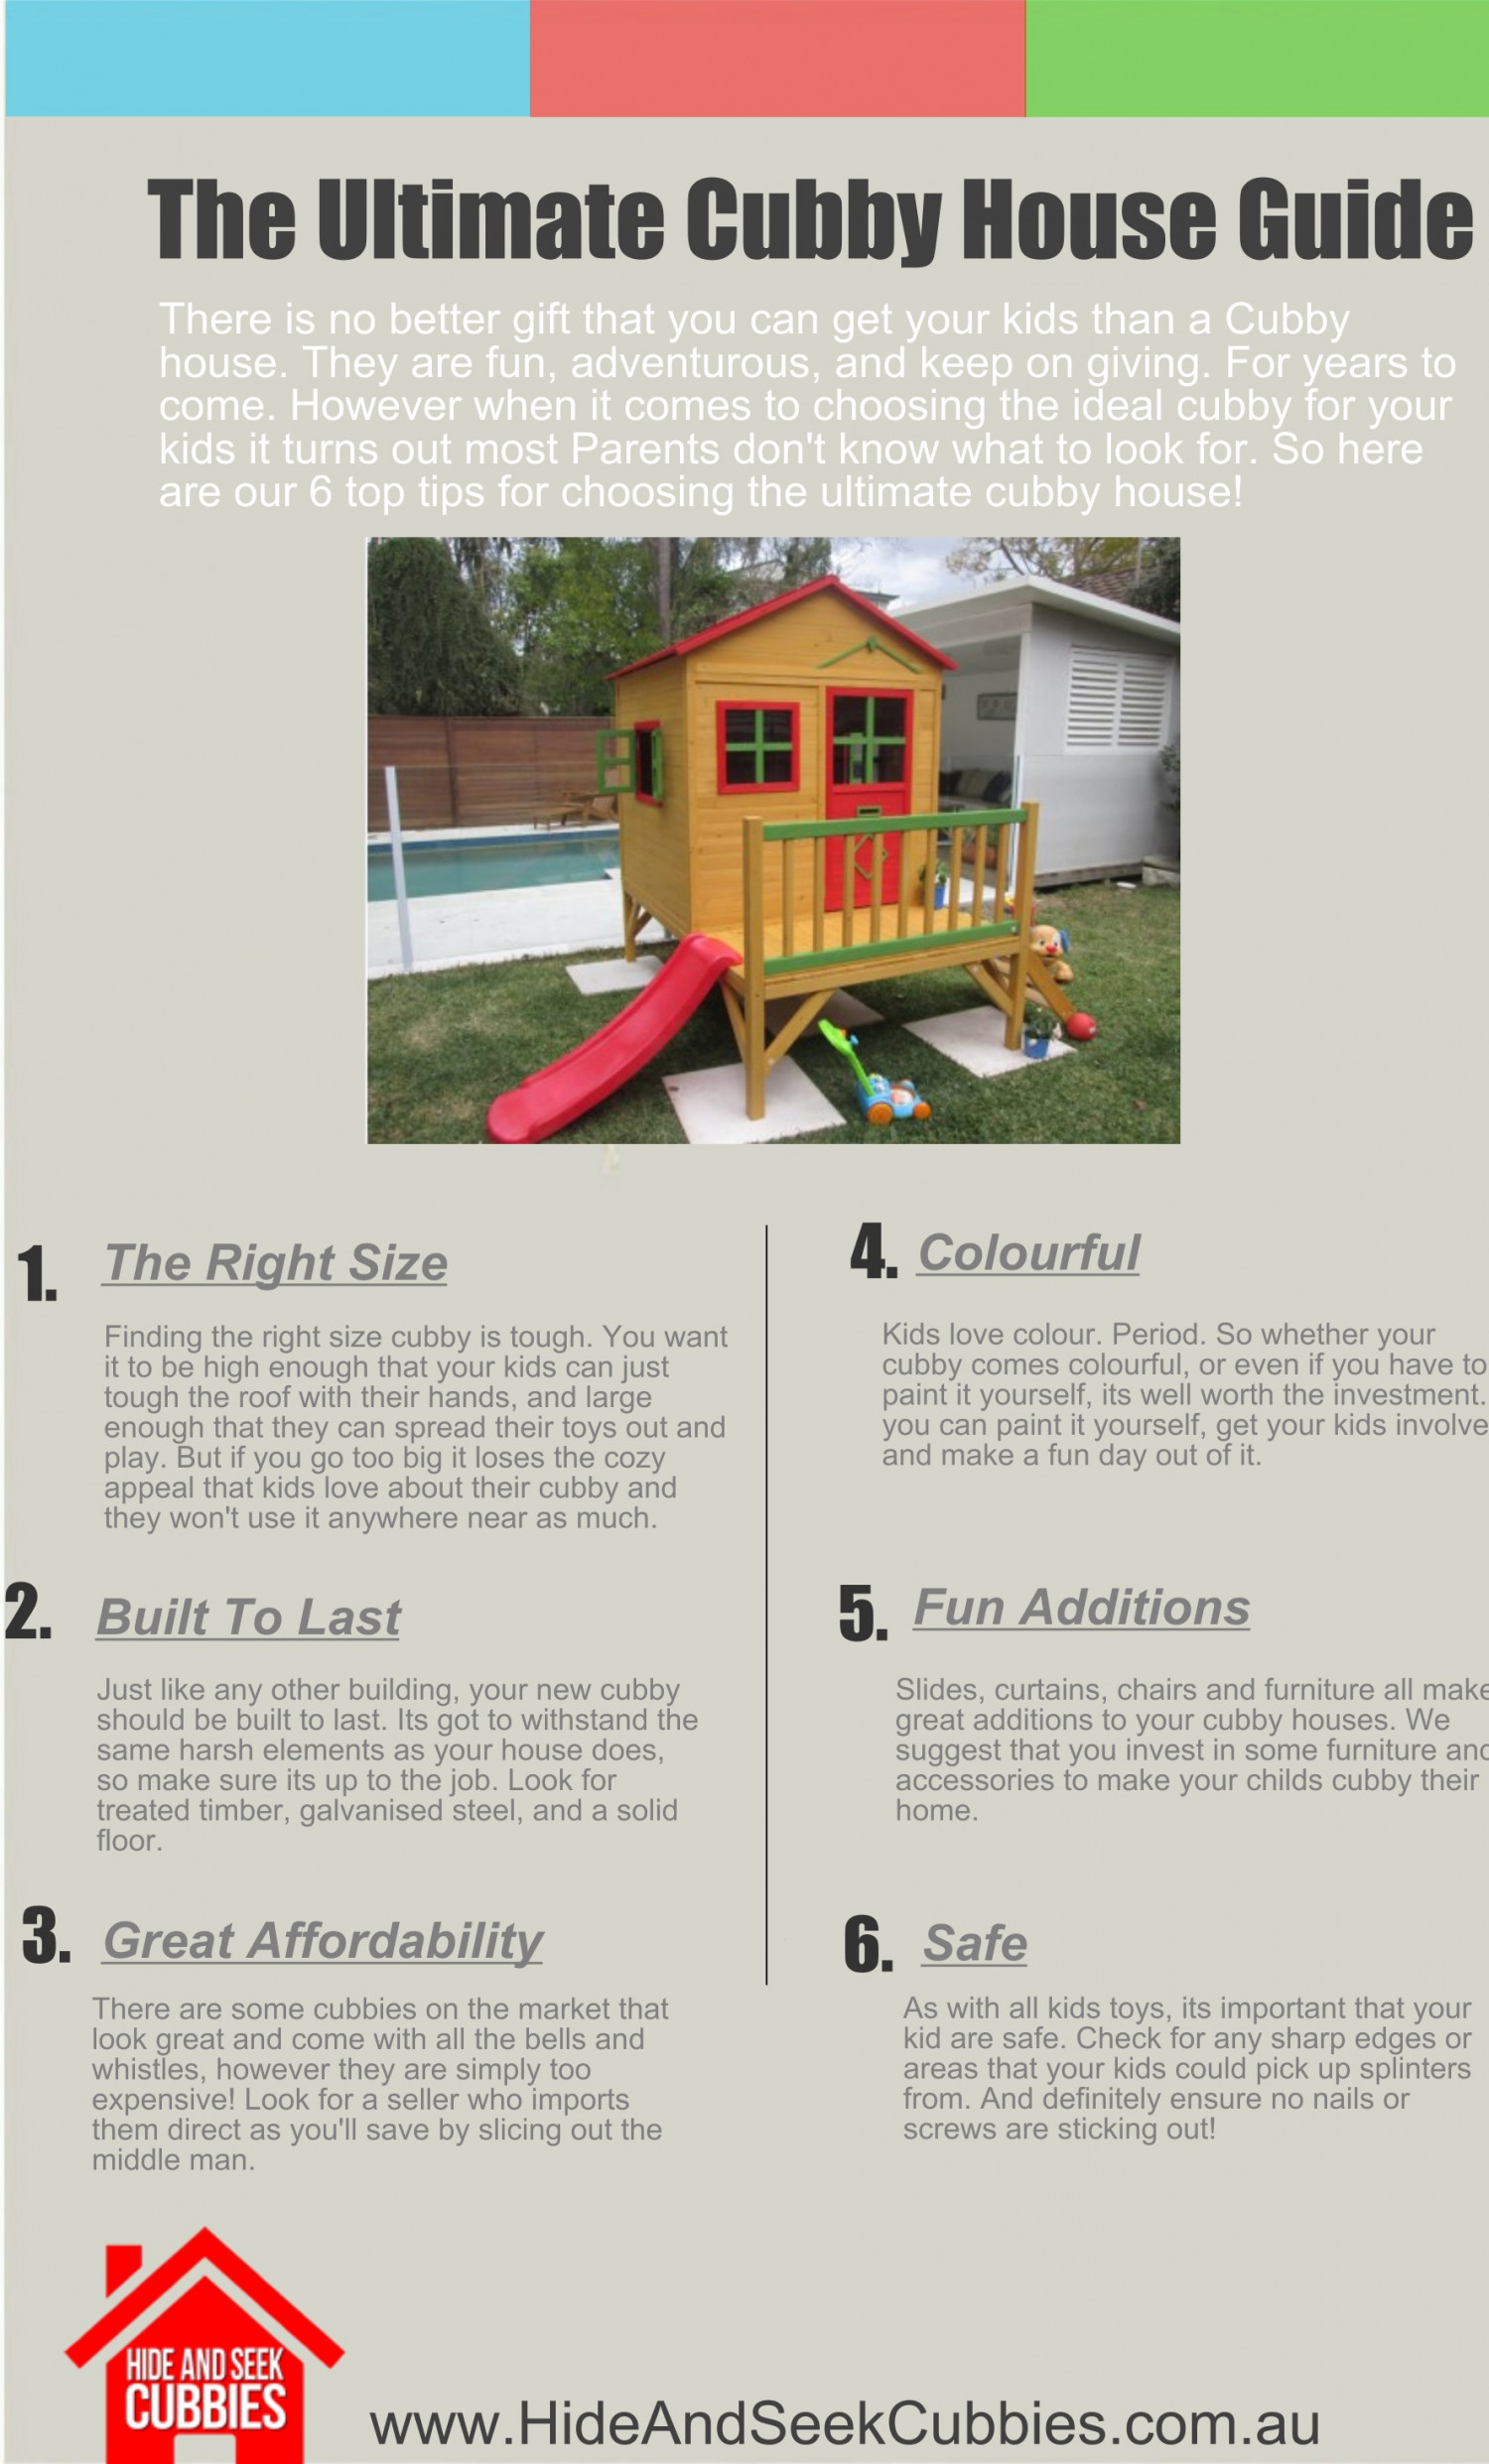 The Ultimate Cubby House Buyers Guide Infographic